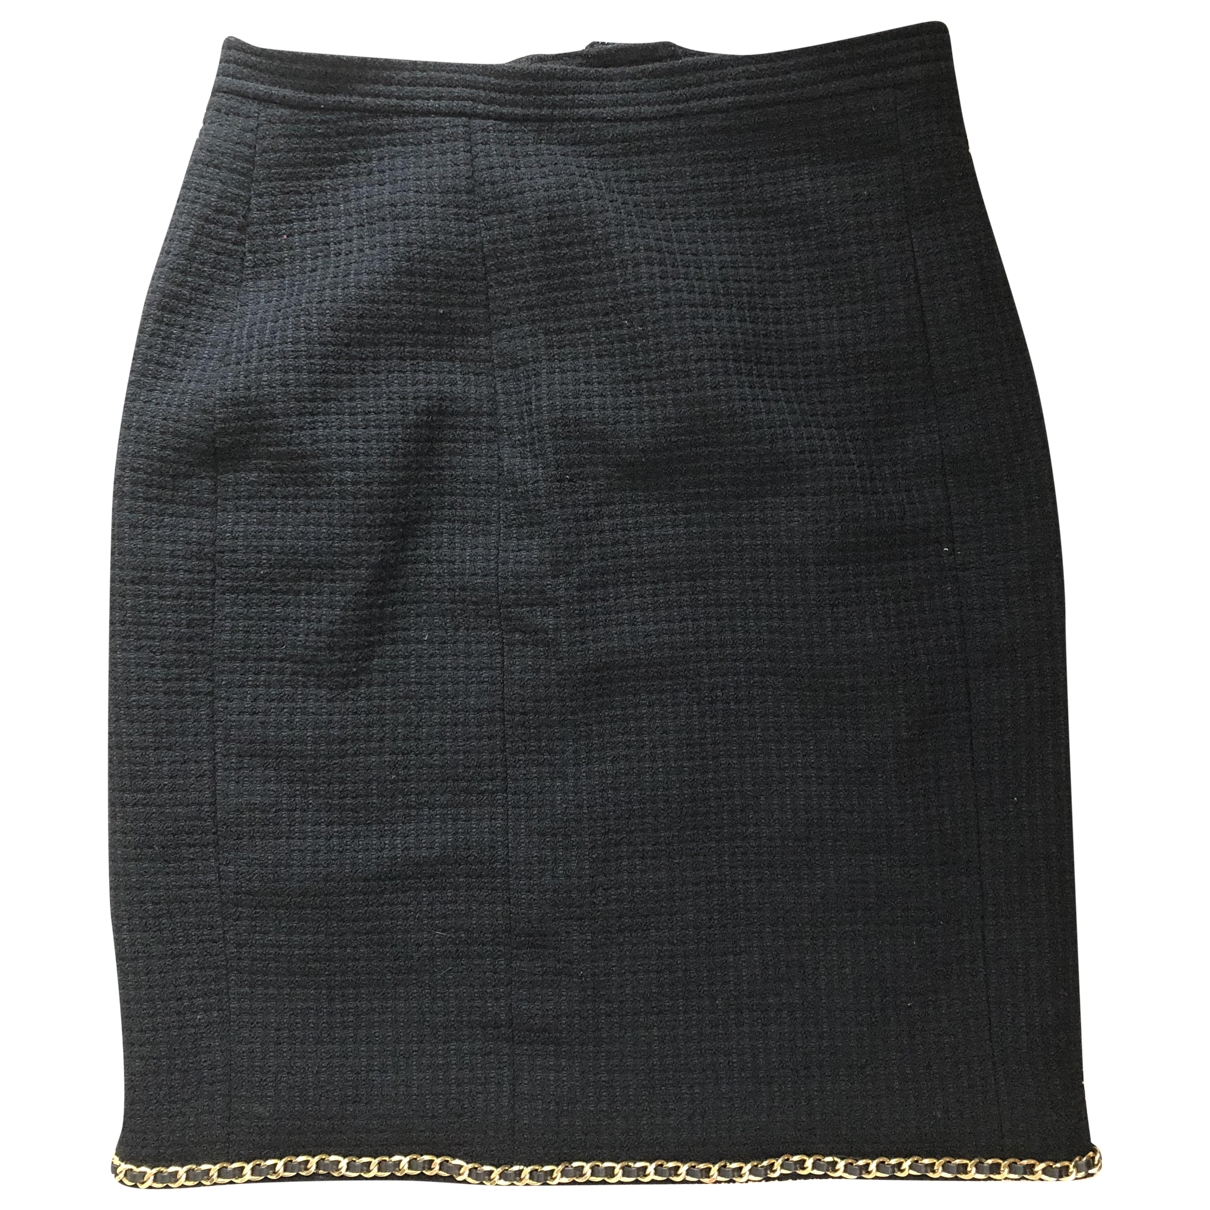 Chanel \N Black Tweed skirt for Women 42 FR